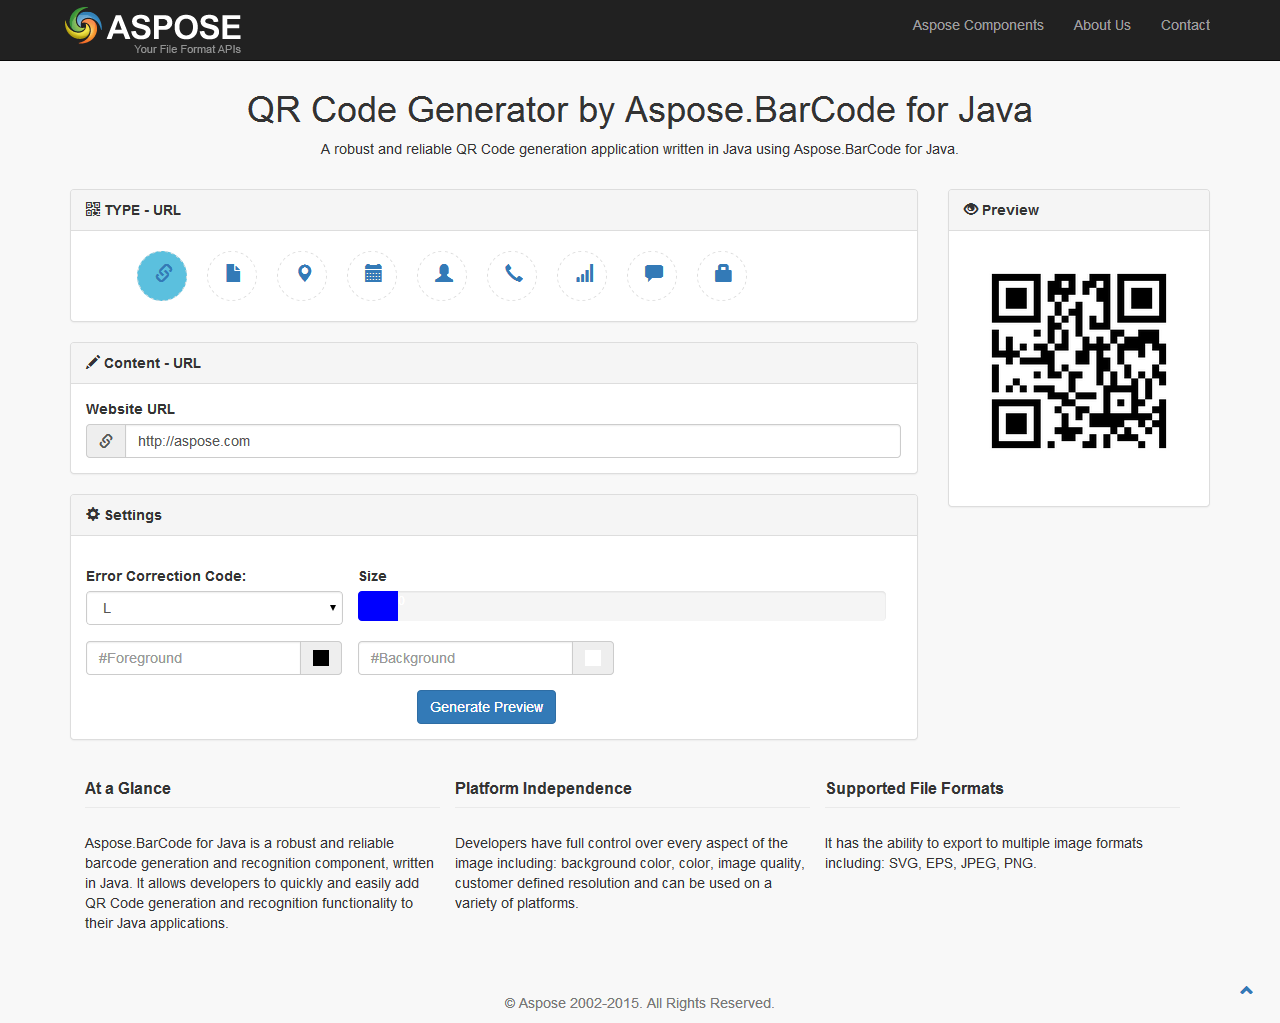 GitHub - AsposeShowcase/QR_Code_Generator_by_Aspose BarCode_for_Java